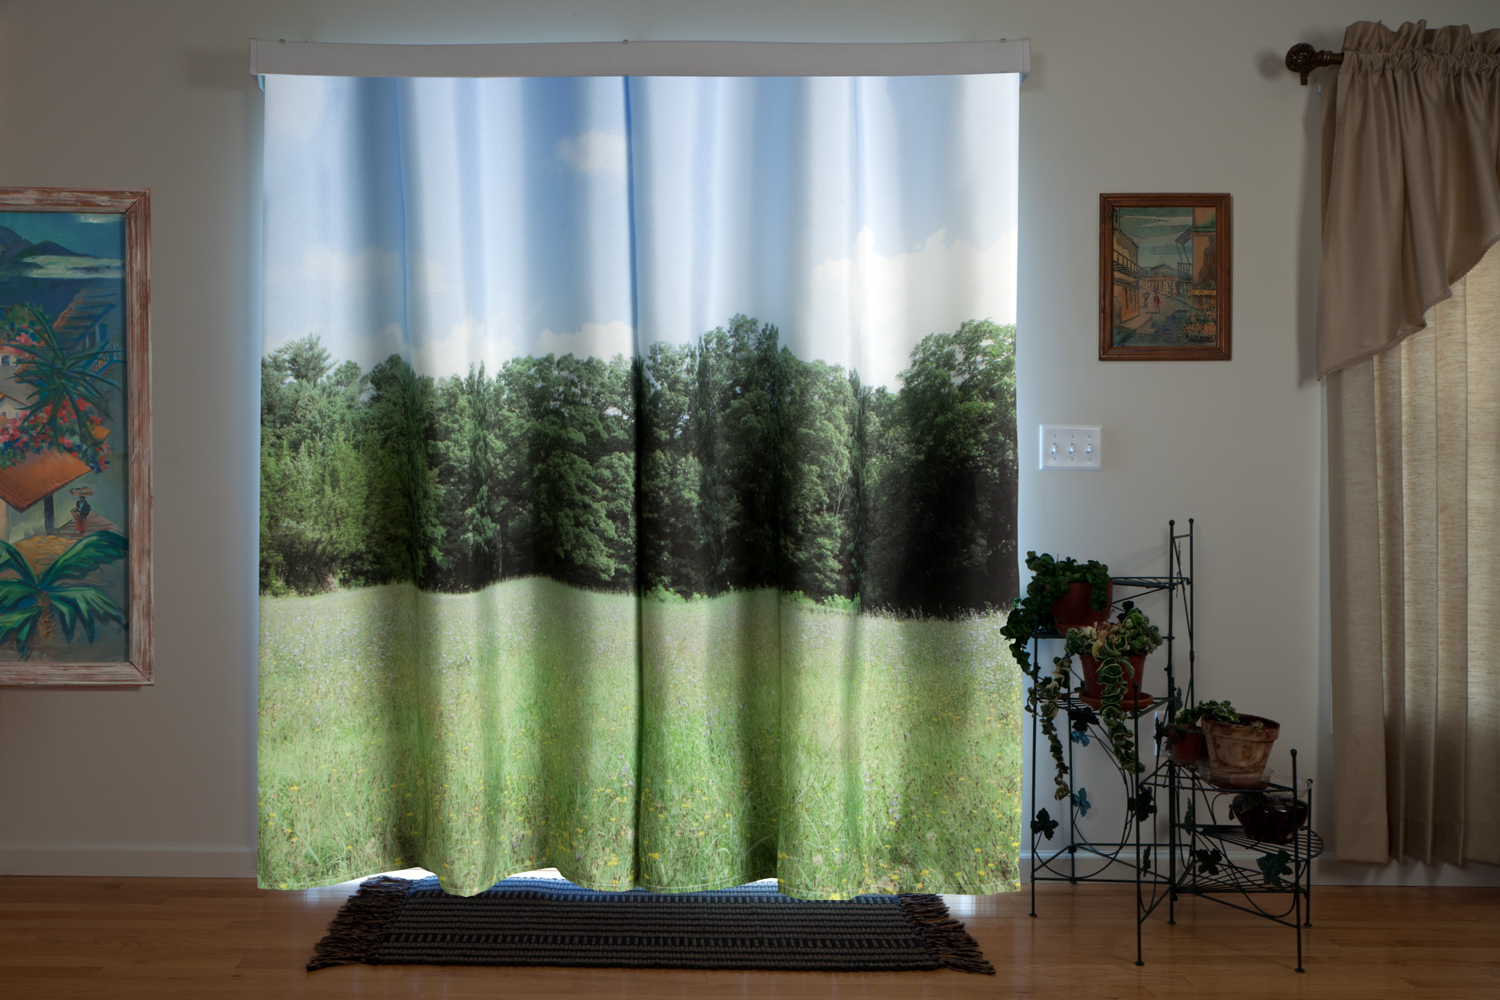 Daylight, 2012, archival pigment print on paper